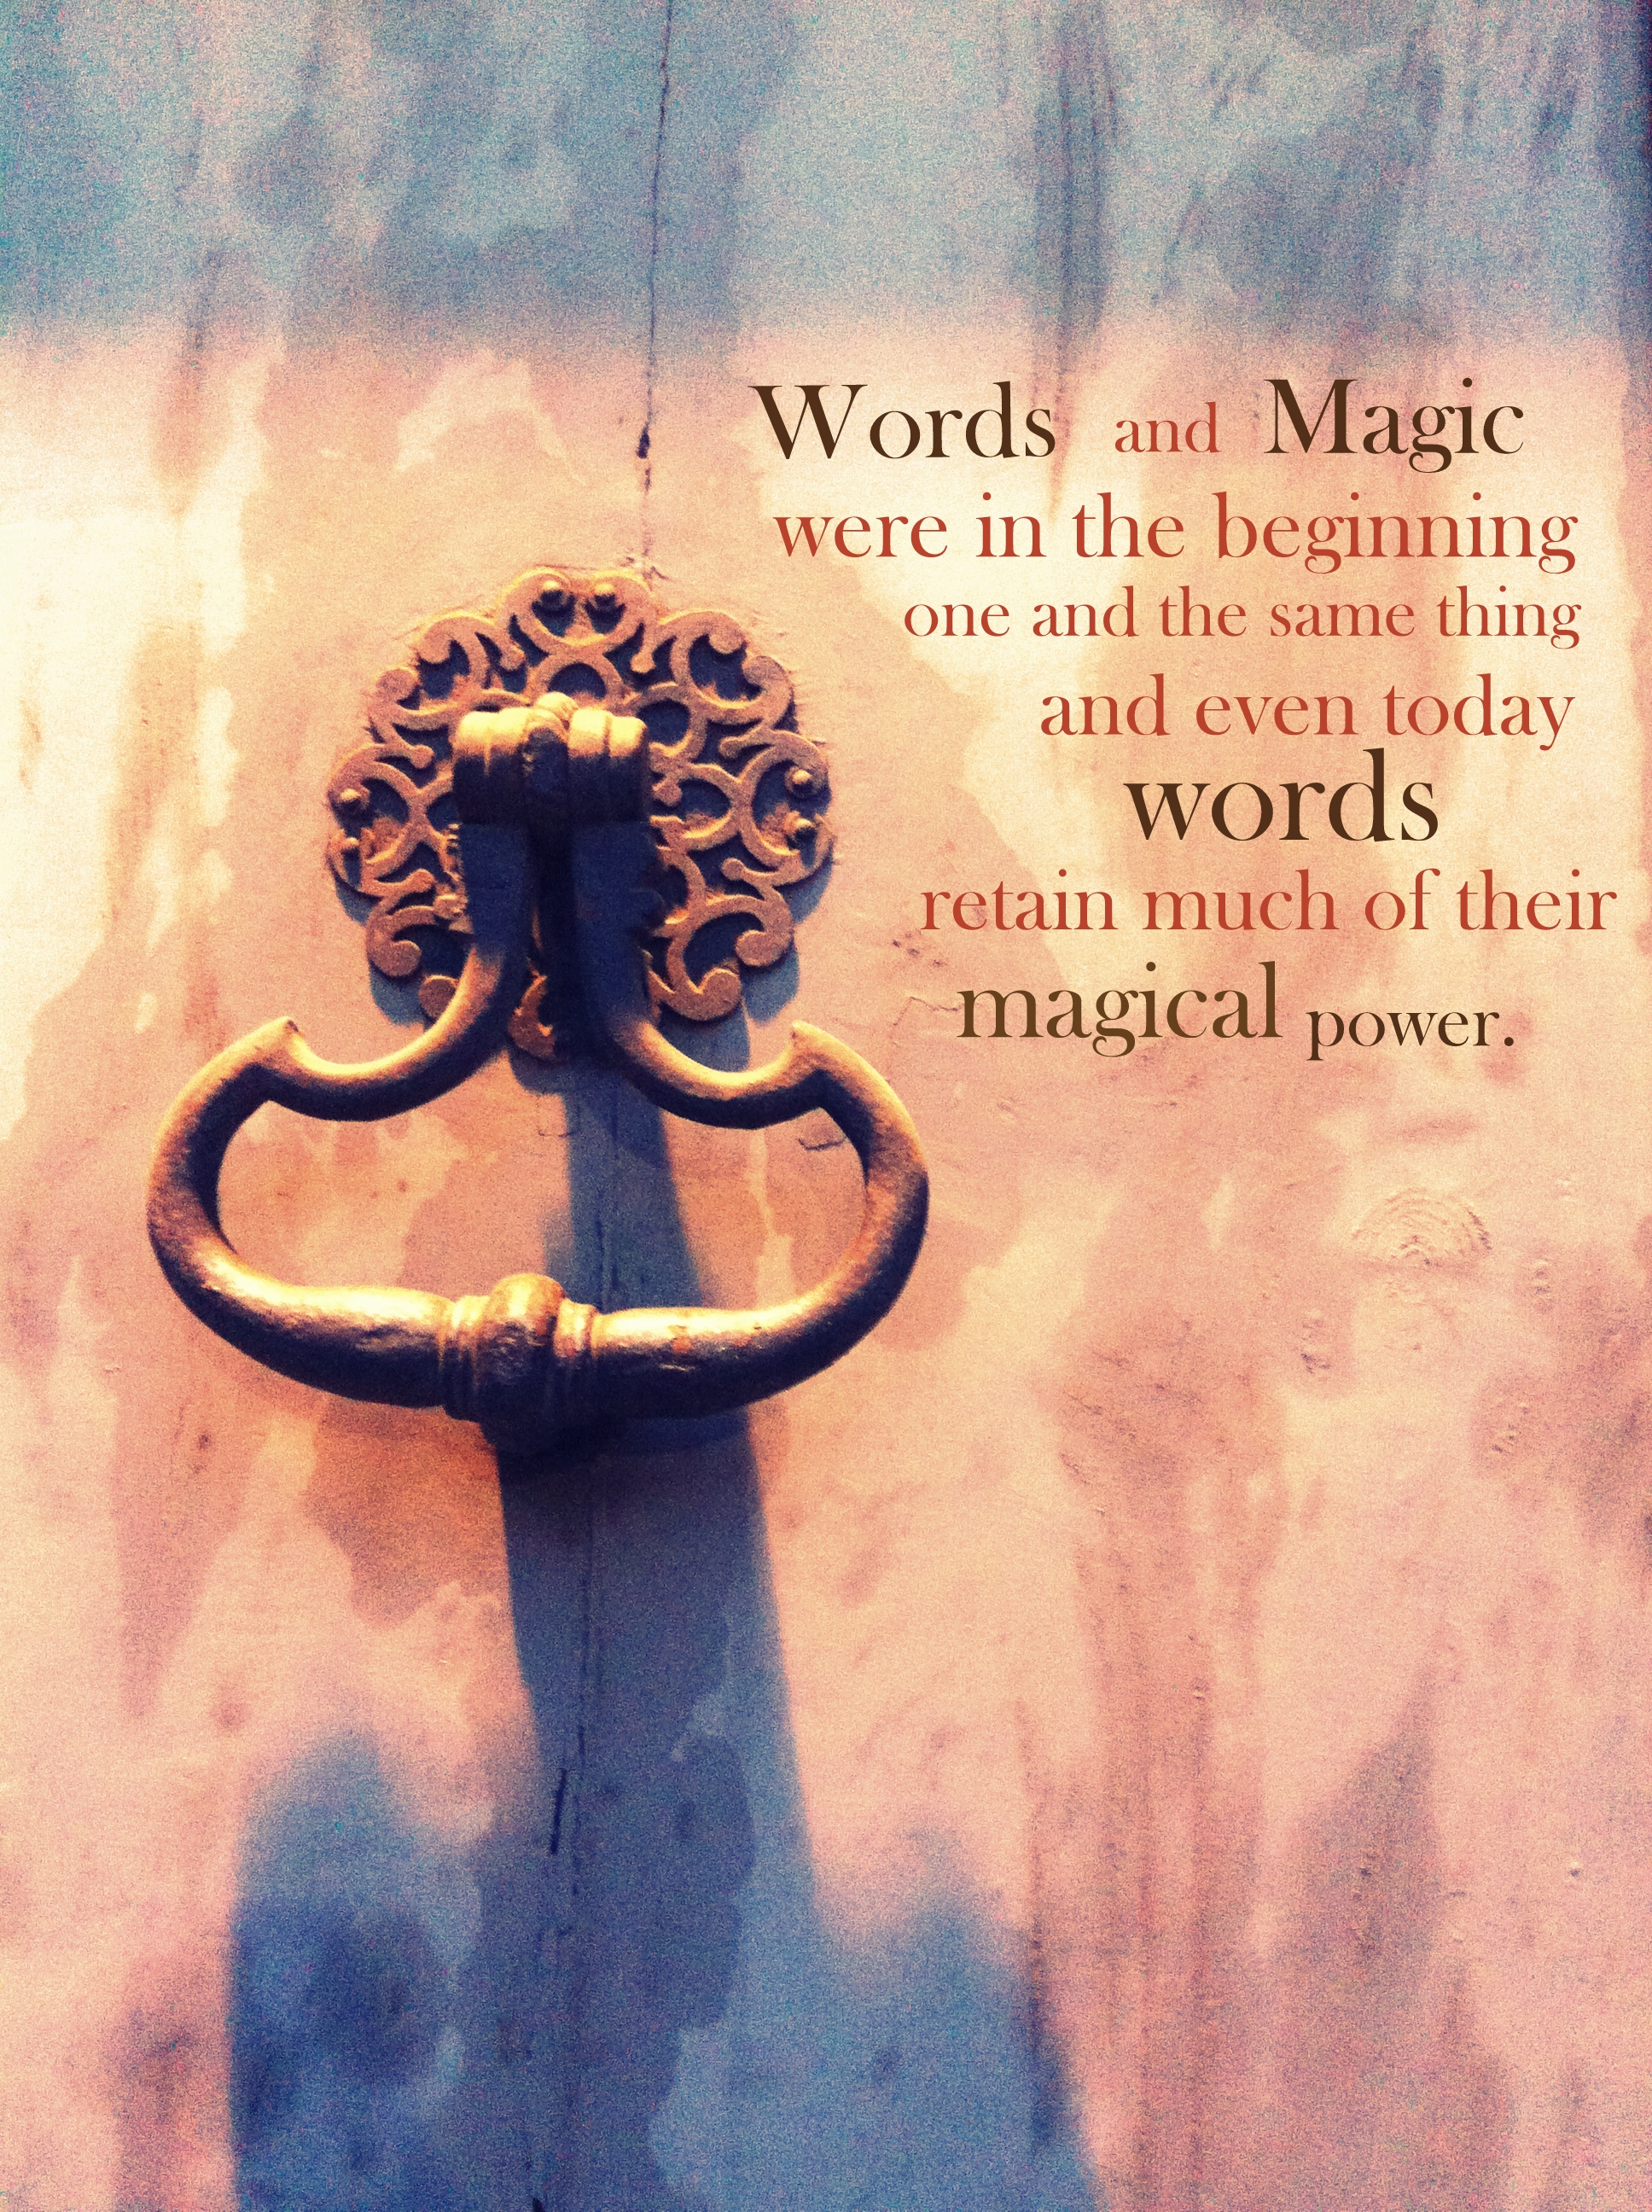 60 Magical Quotes That Will Inspire You